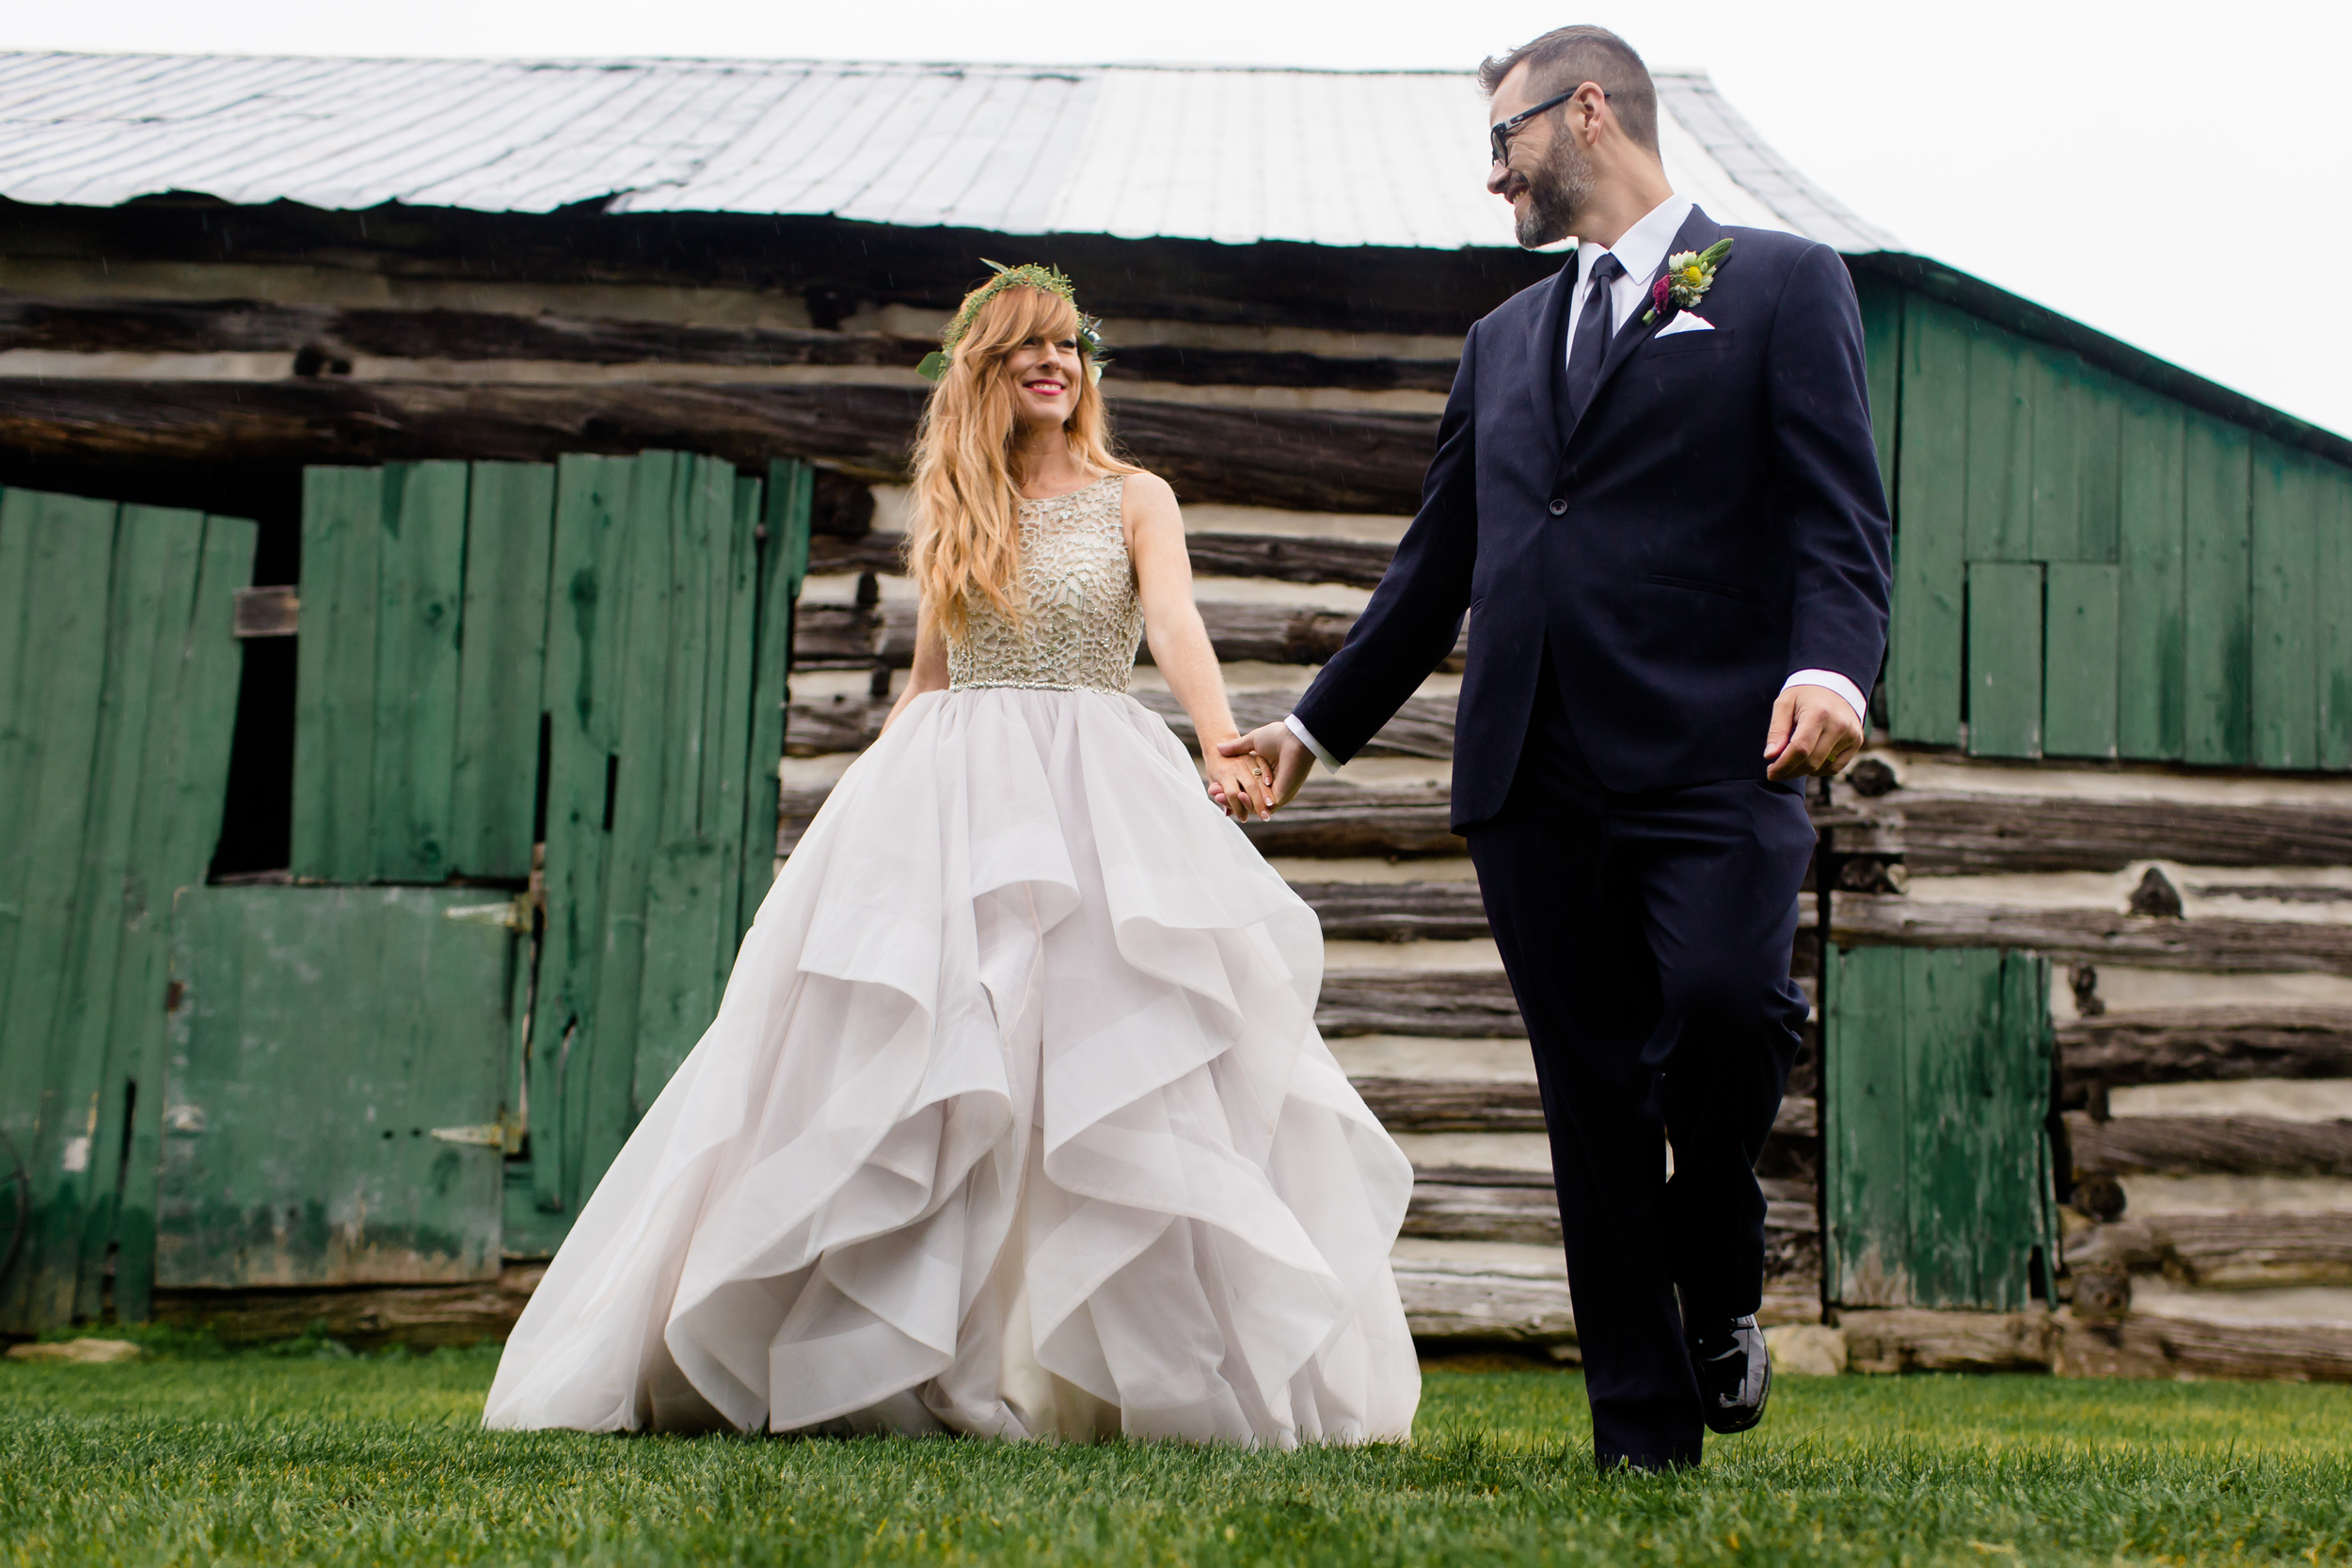 The bride and groom during their portrait session at Stonefields